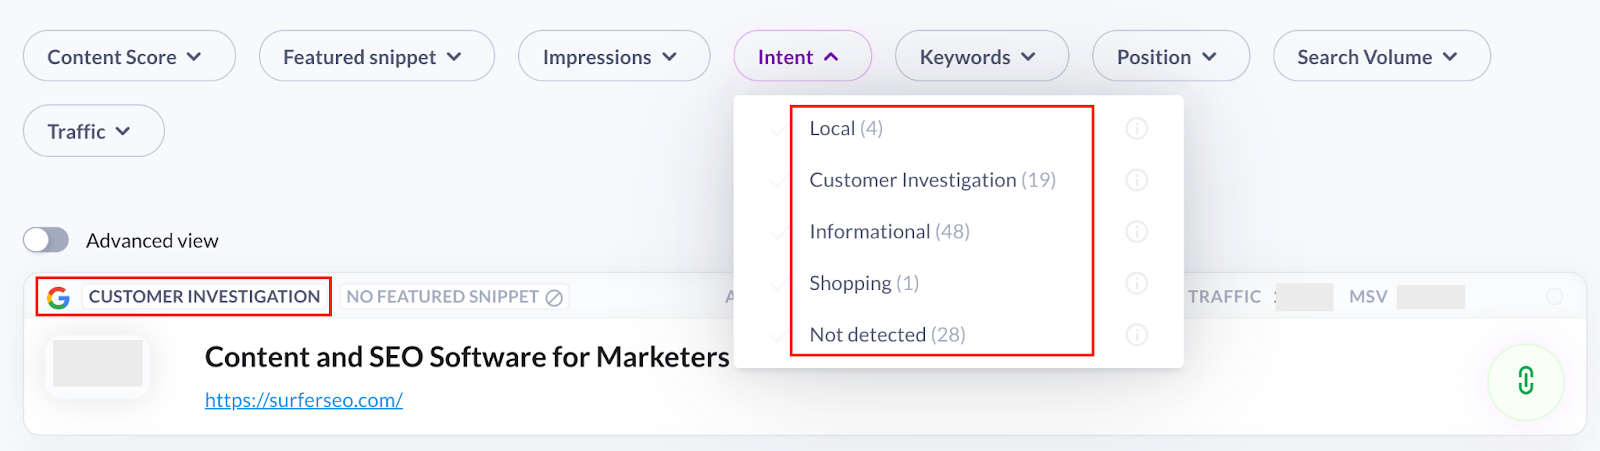 Search intent in Surfer Content Planner for the domain